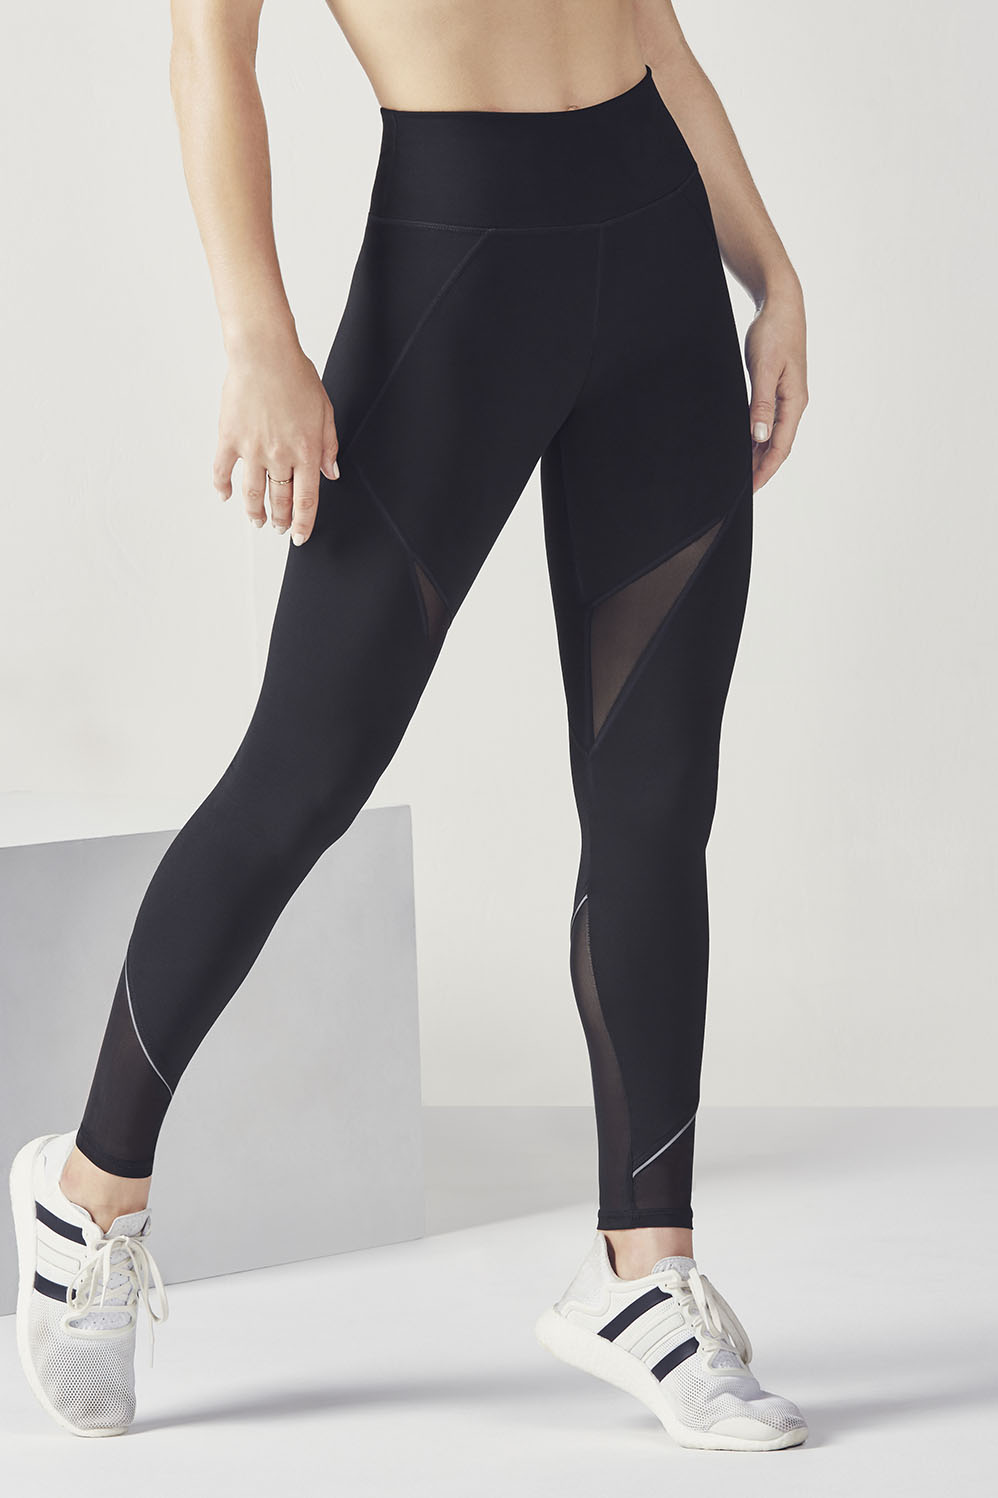 Fabletics Tight High-Waisted Mesh Powerhold Legging Womens Black Size XL